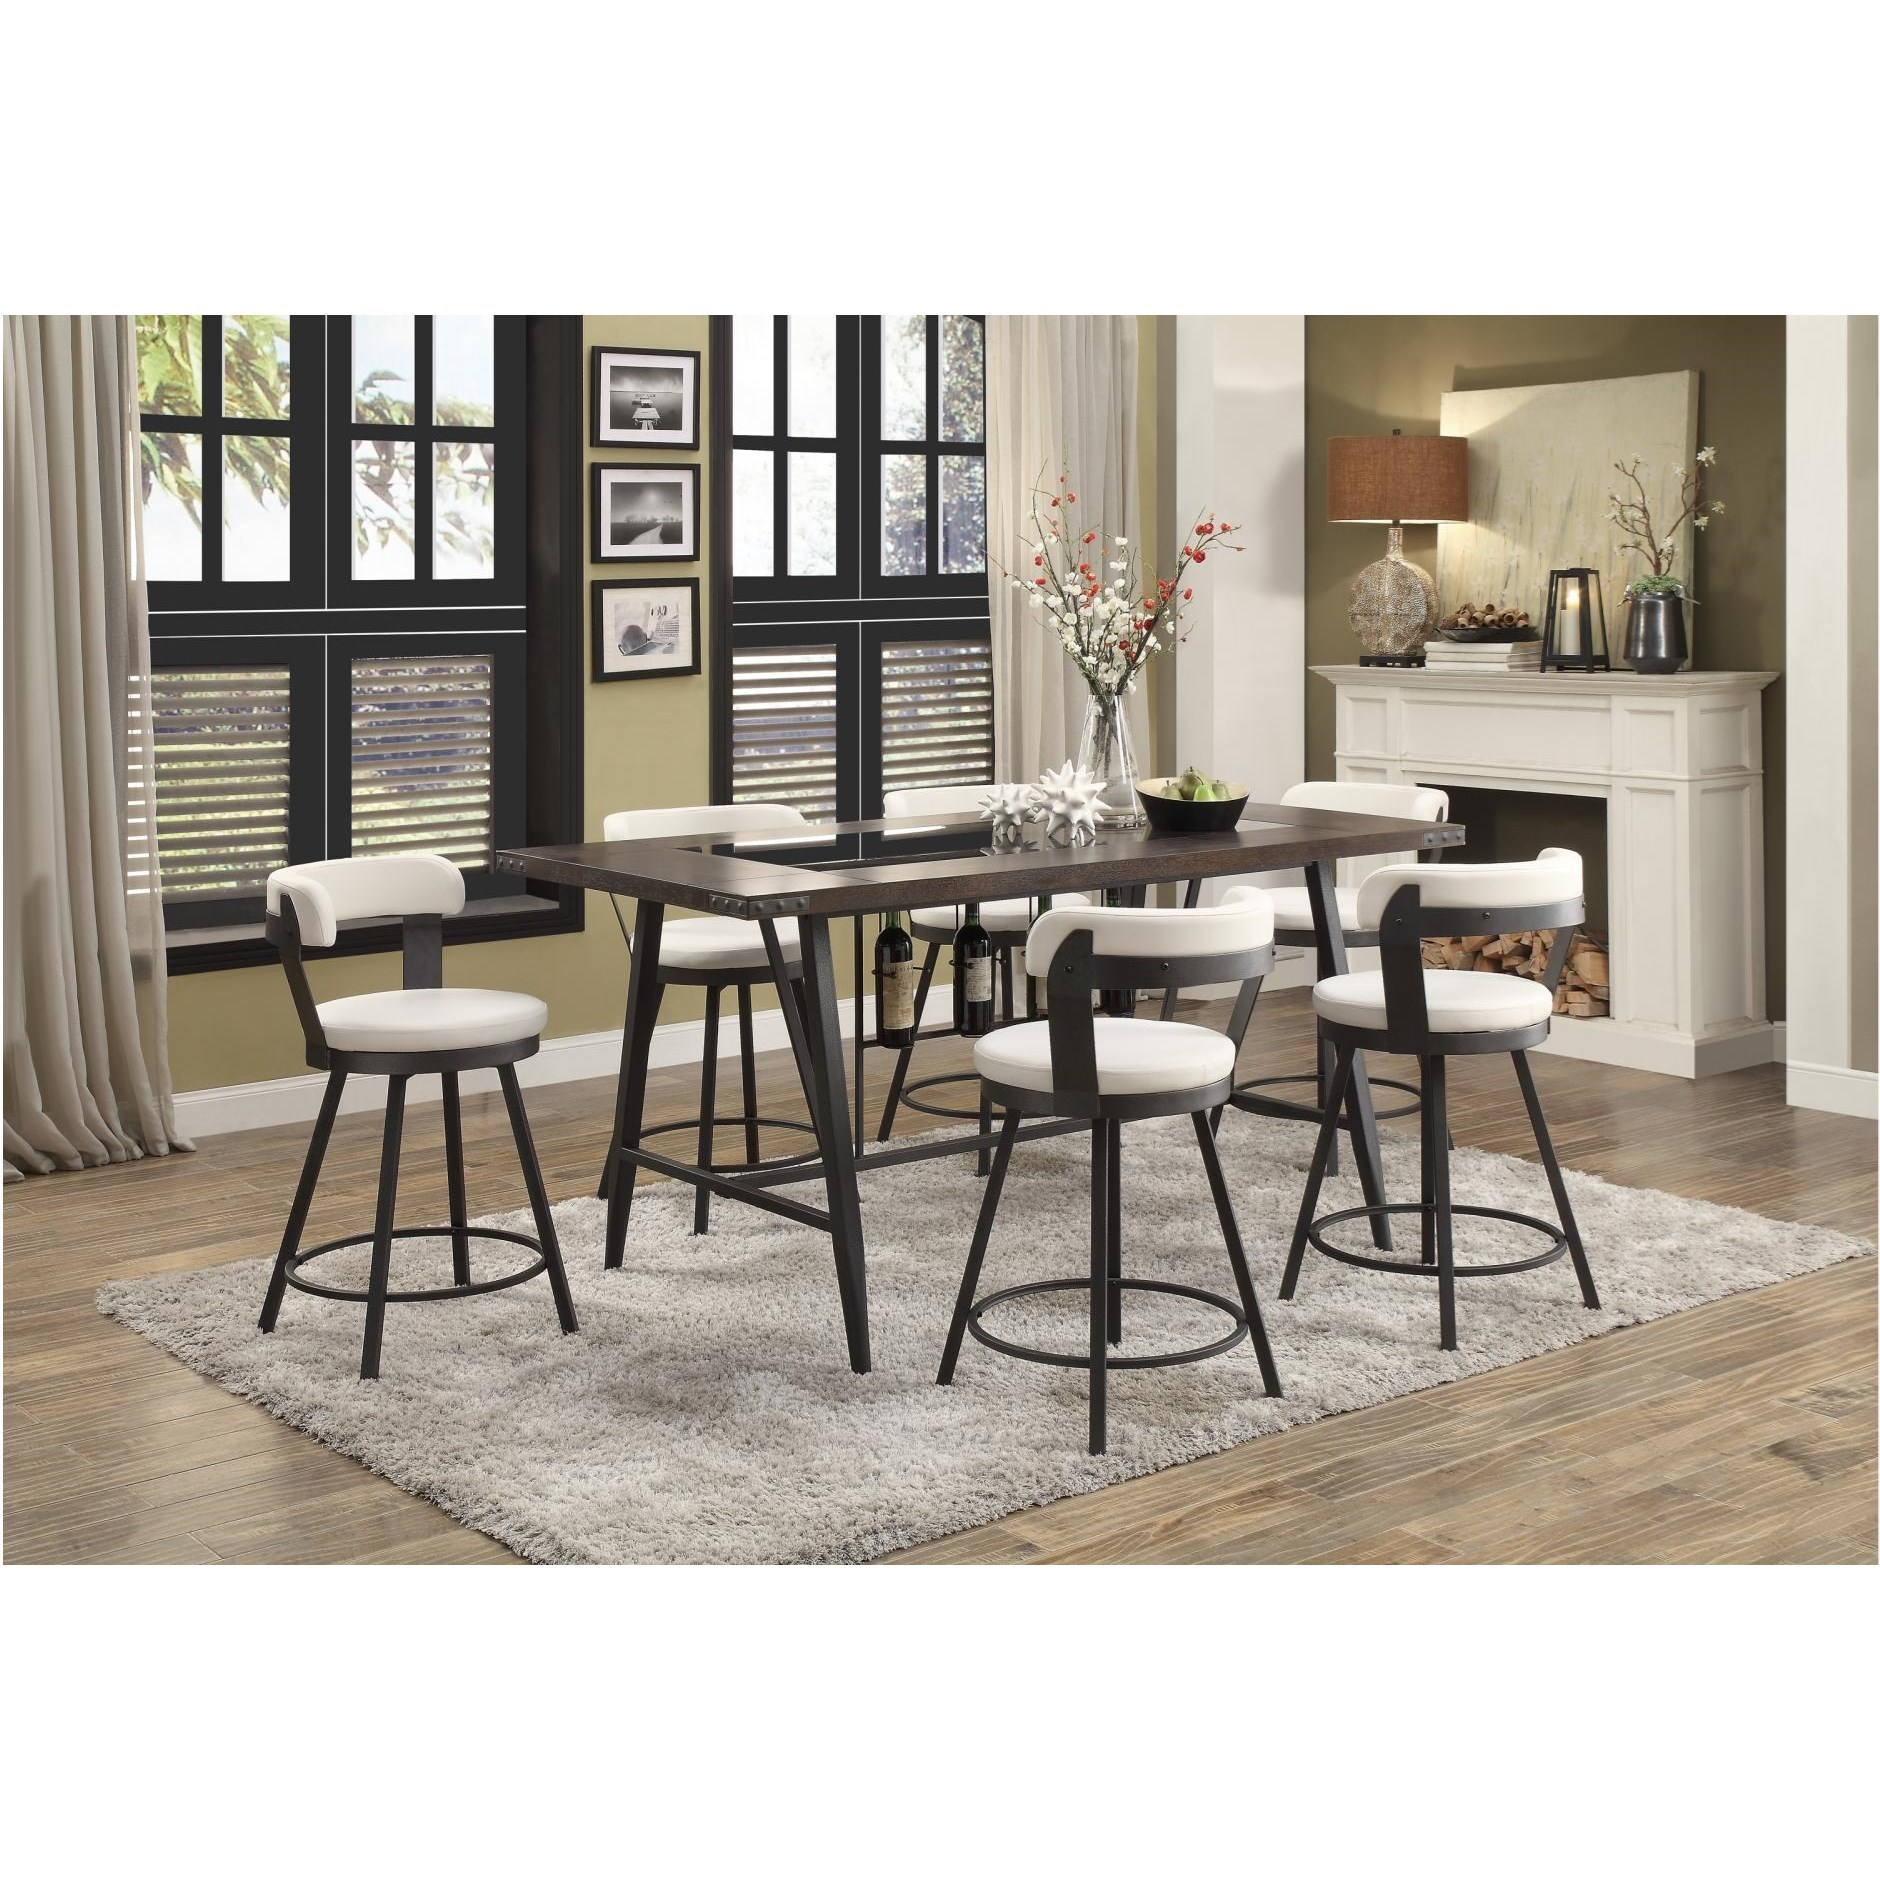 Appert 7 Piece Dining Set by Homelegance at Simply Home by Lindy's